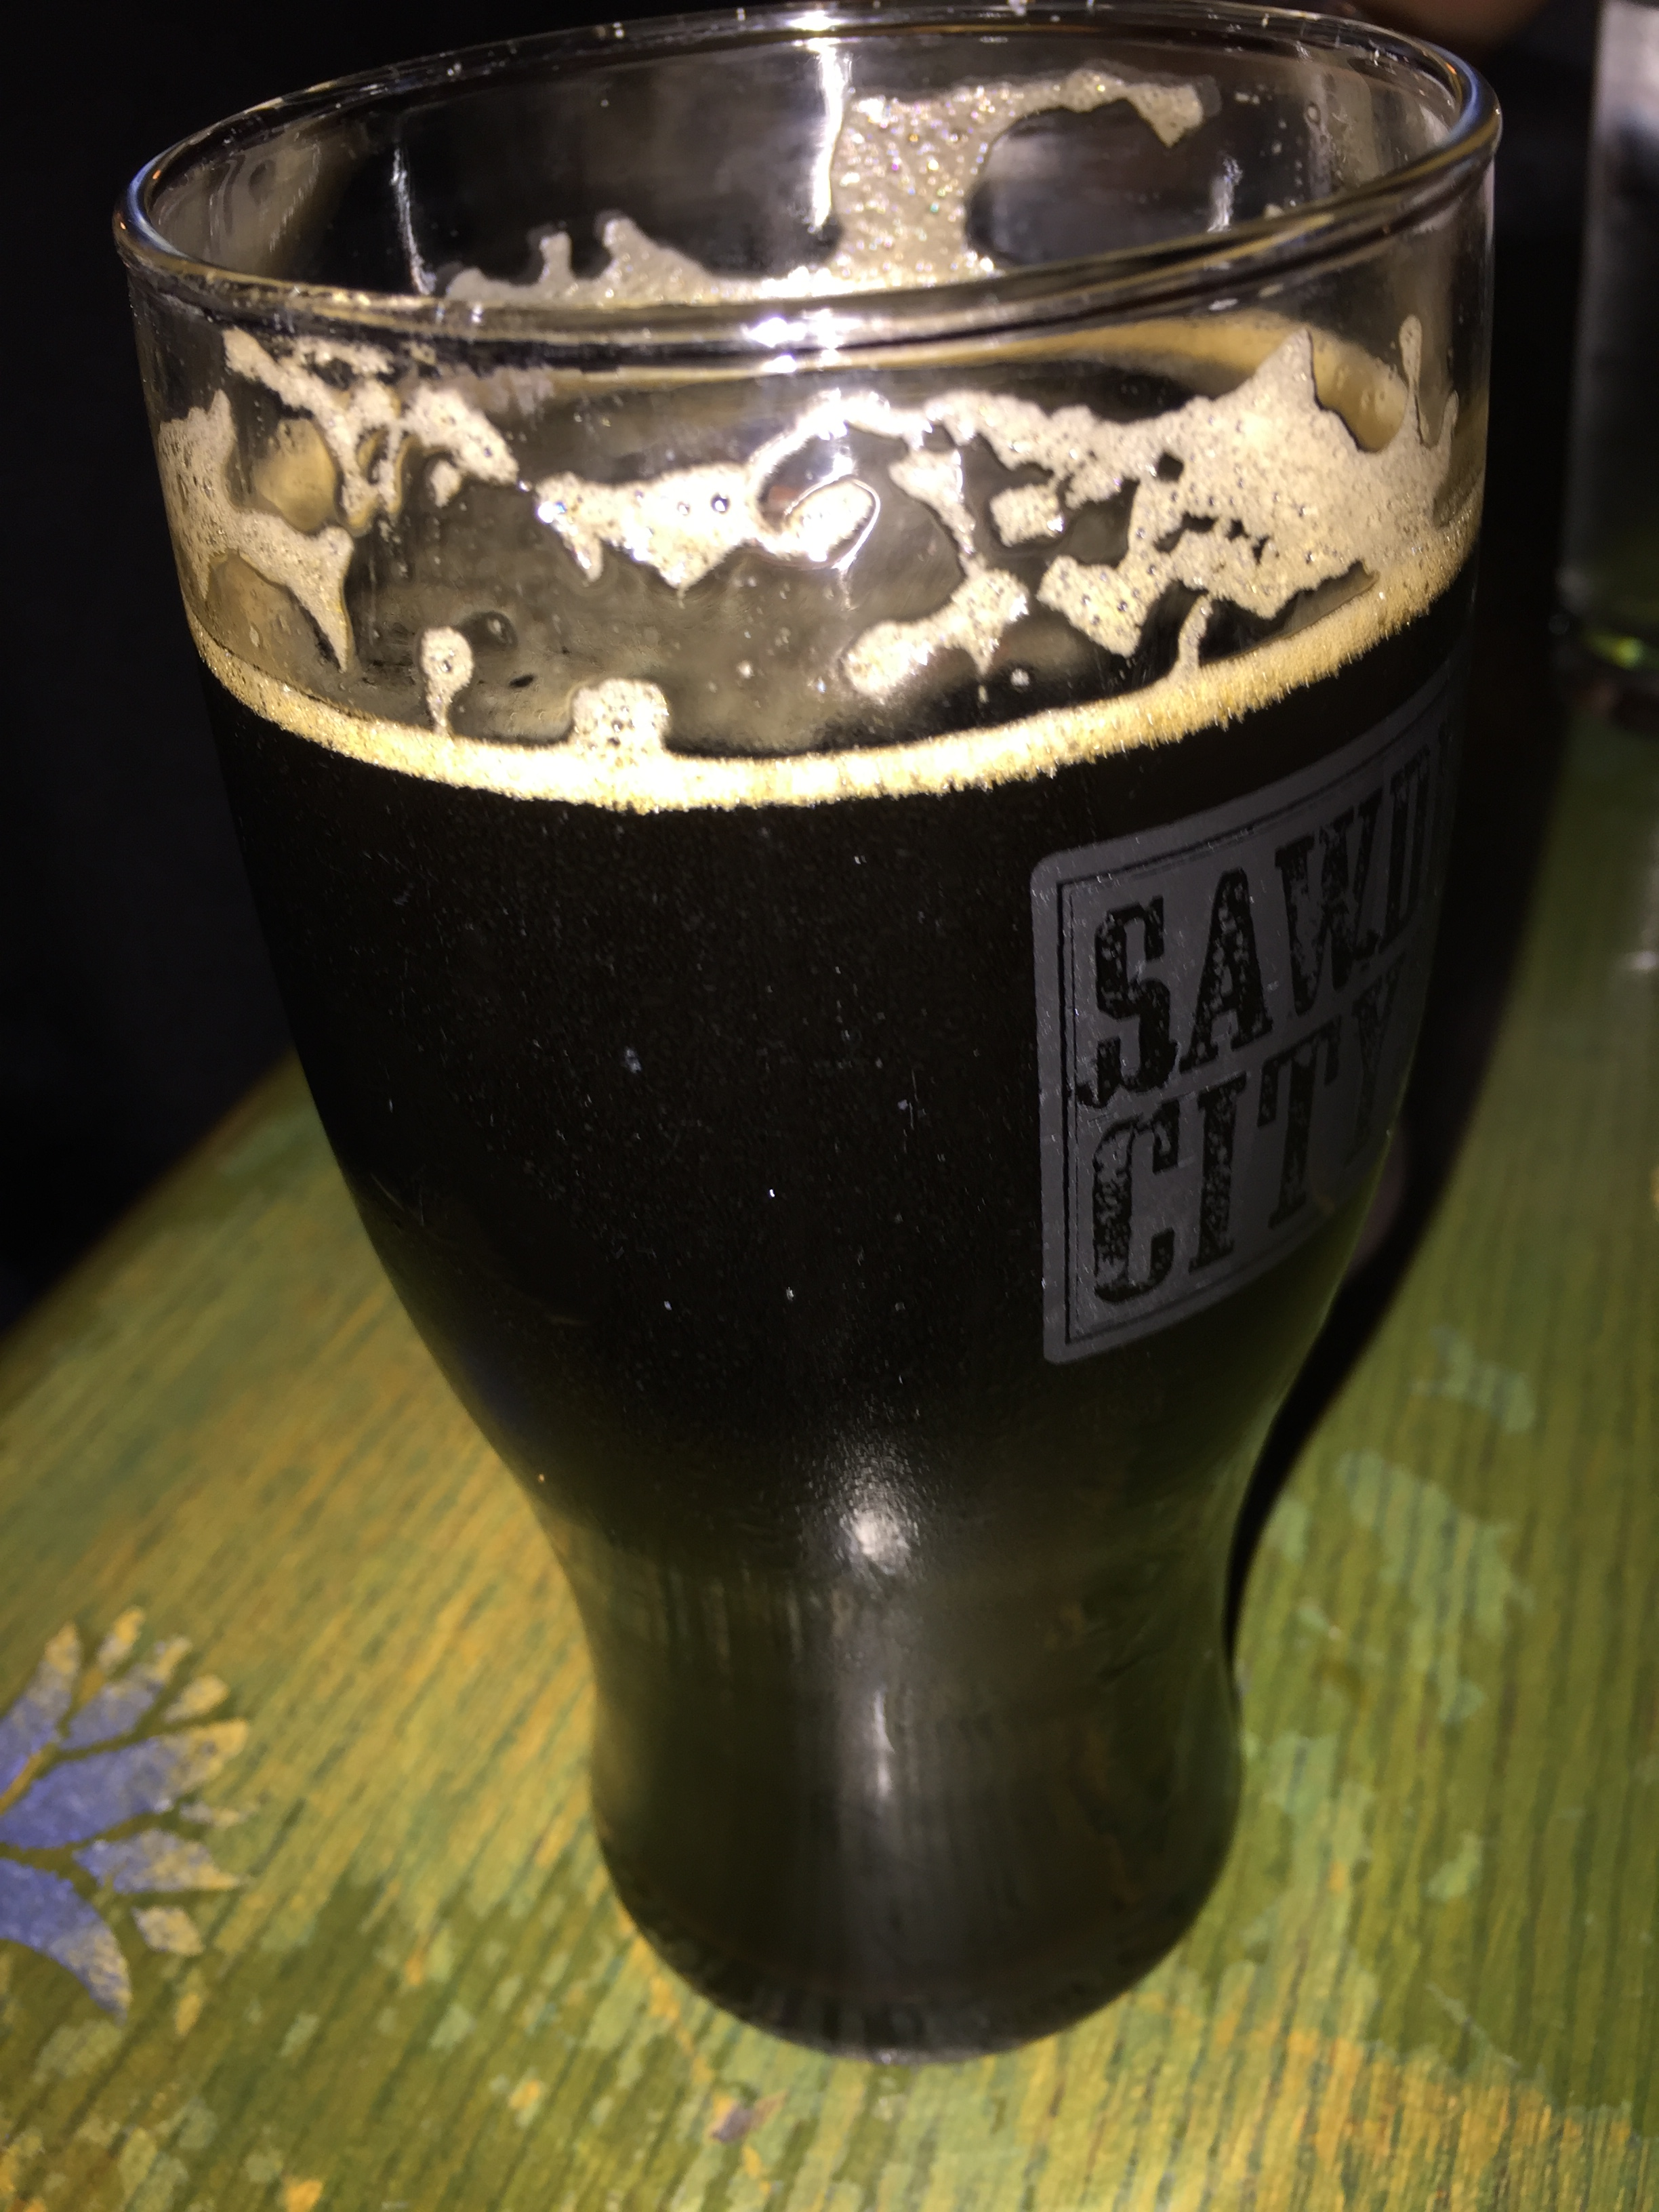 cheshire_valley_robust_porter (2)